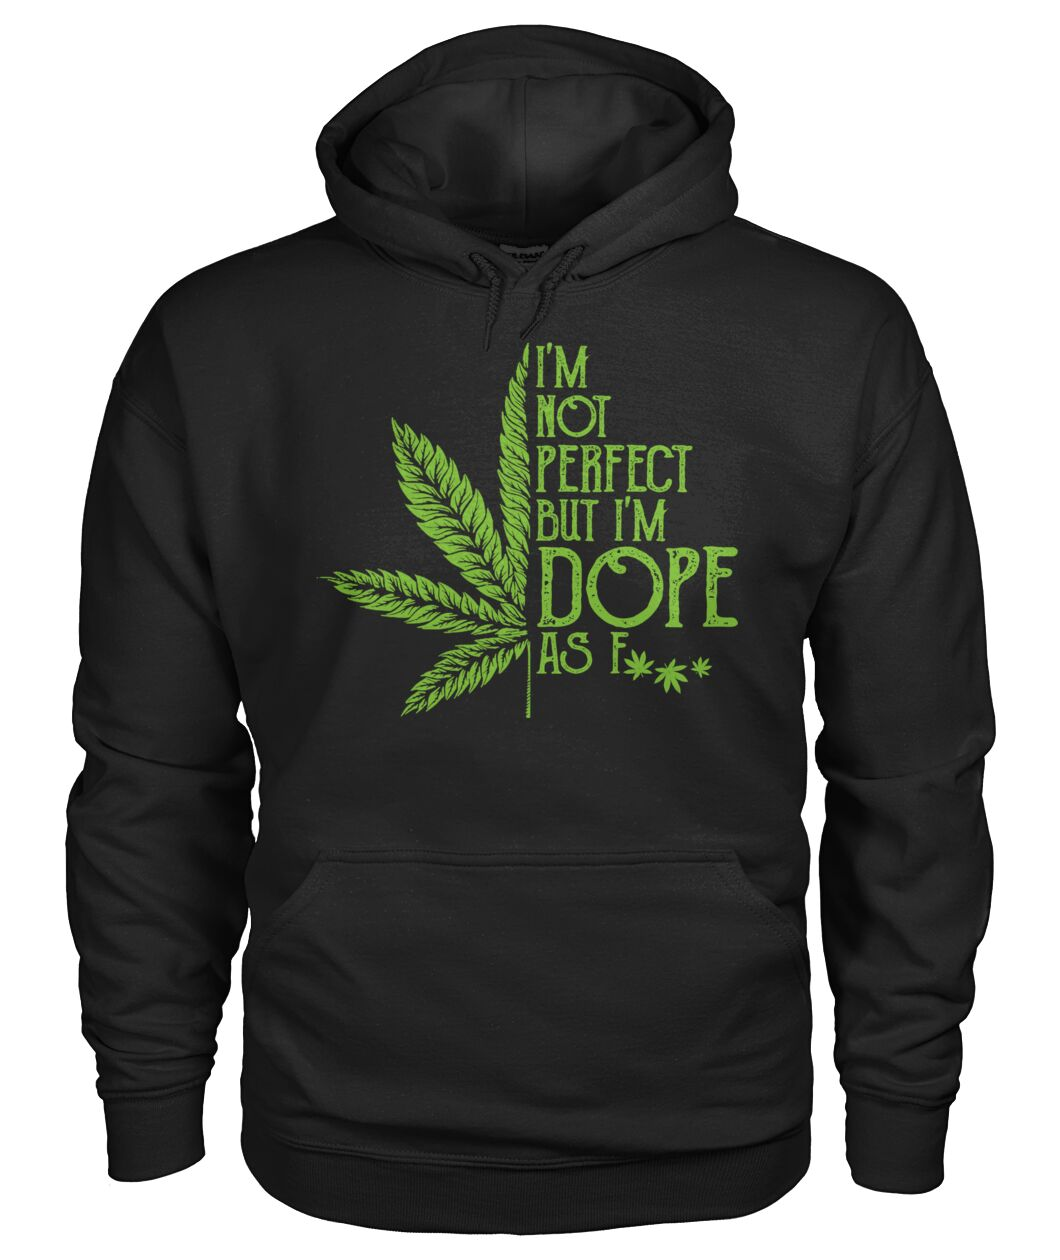 I'm Not Perfect But I'm Dope As Fuck Weed hoodie